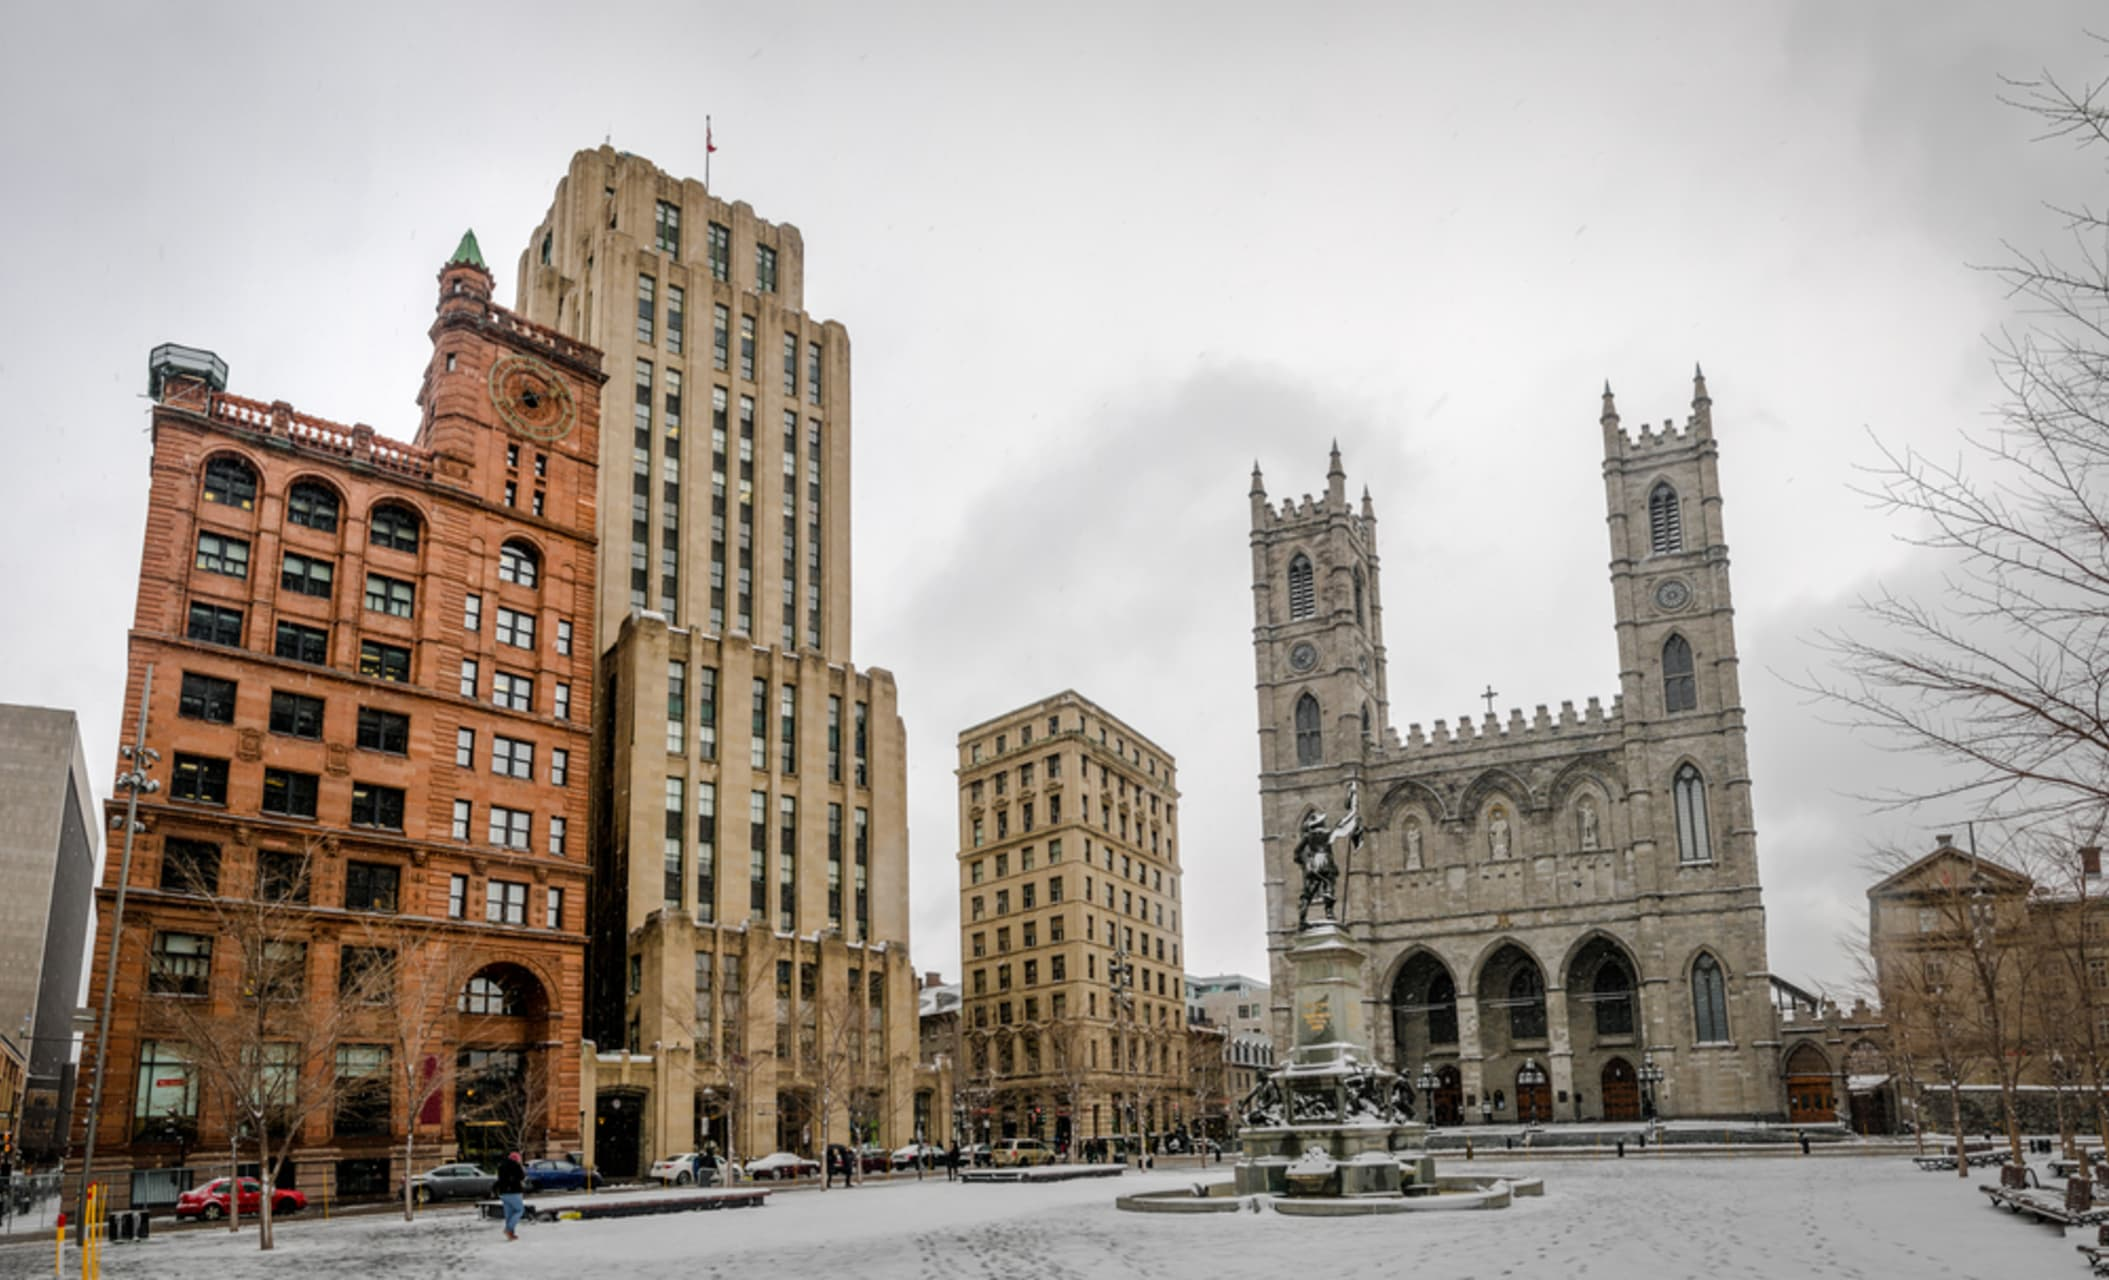 Montreal - Place d'Armes: 1 Public Square, 350 Years of History and Architecture